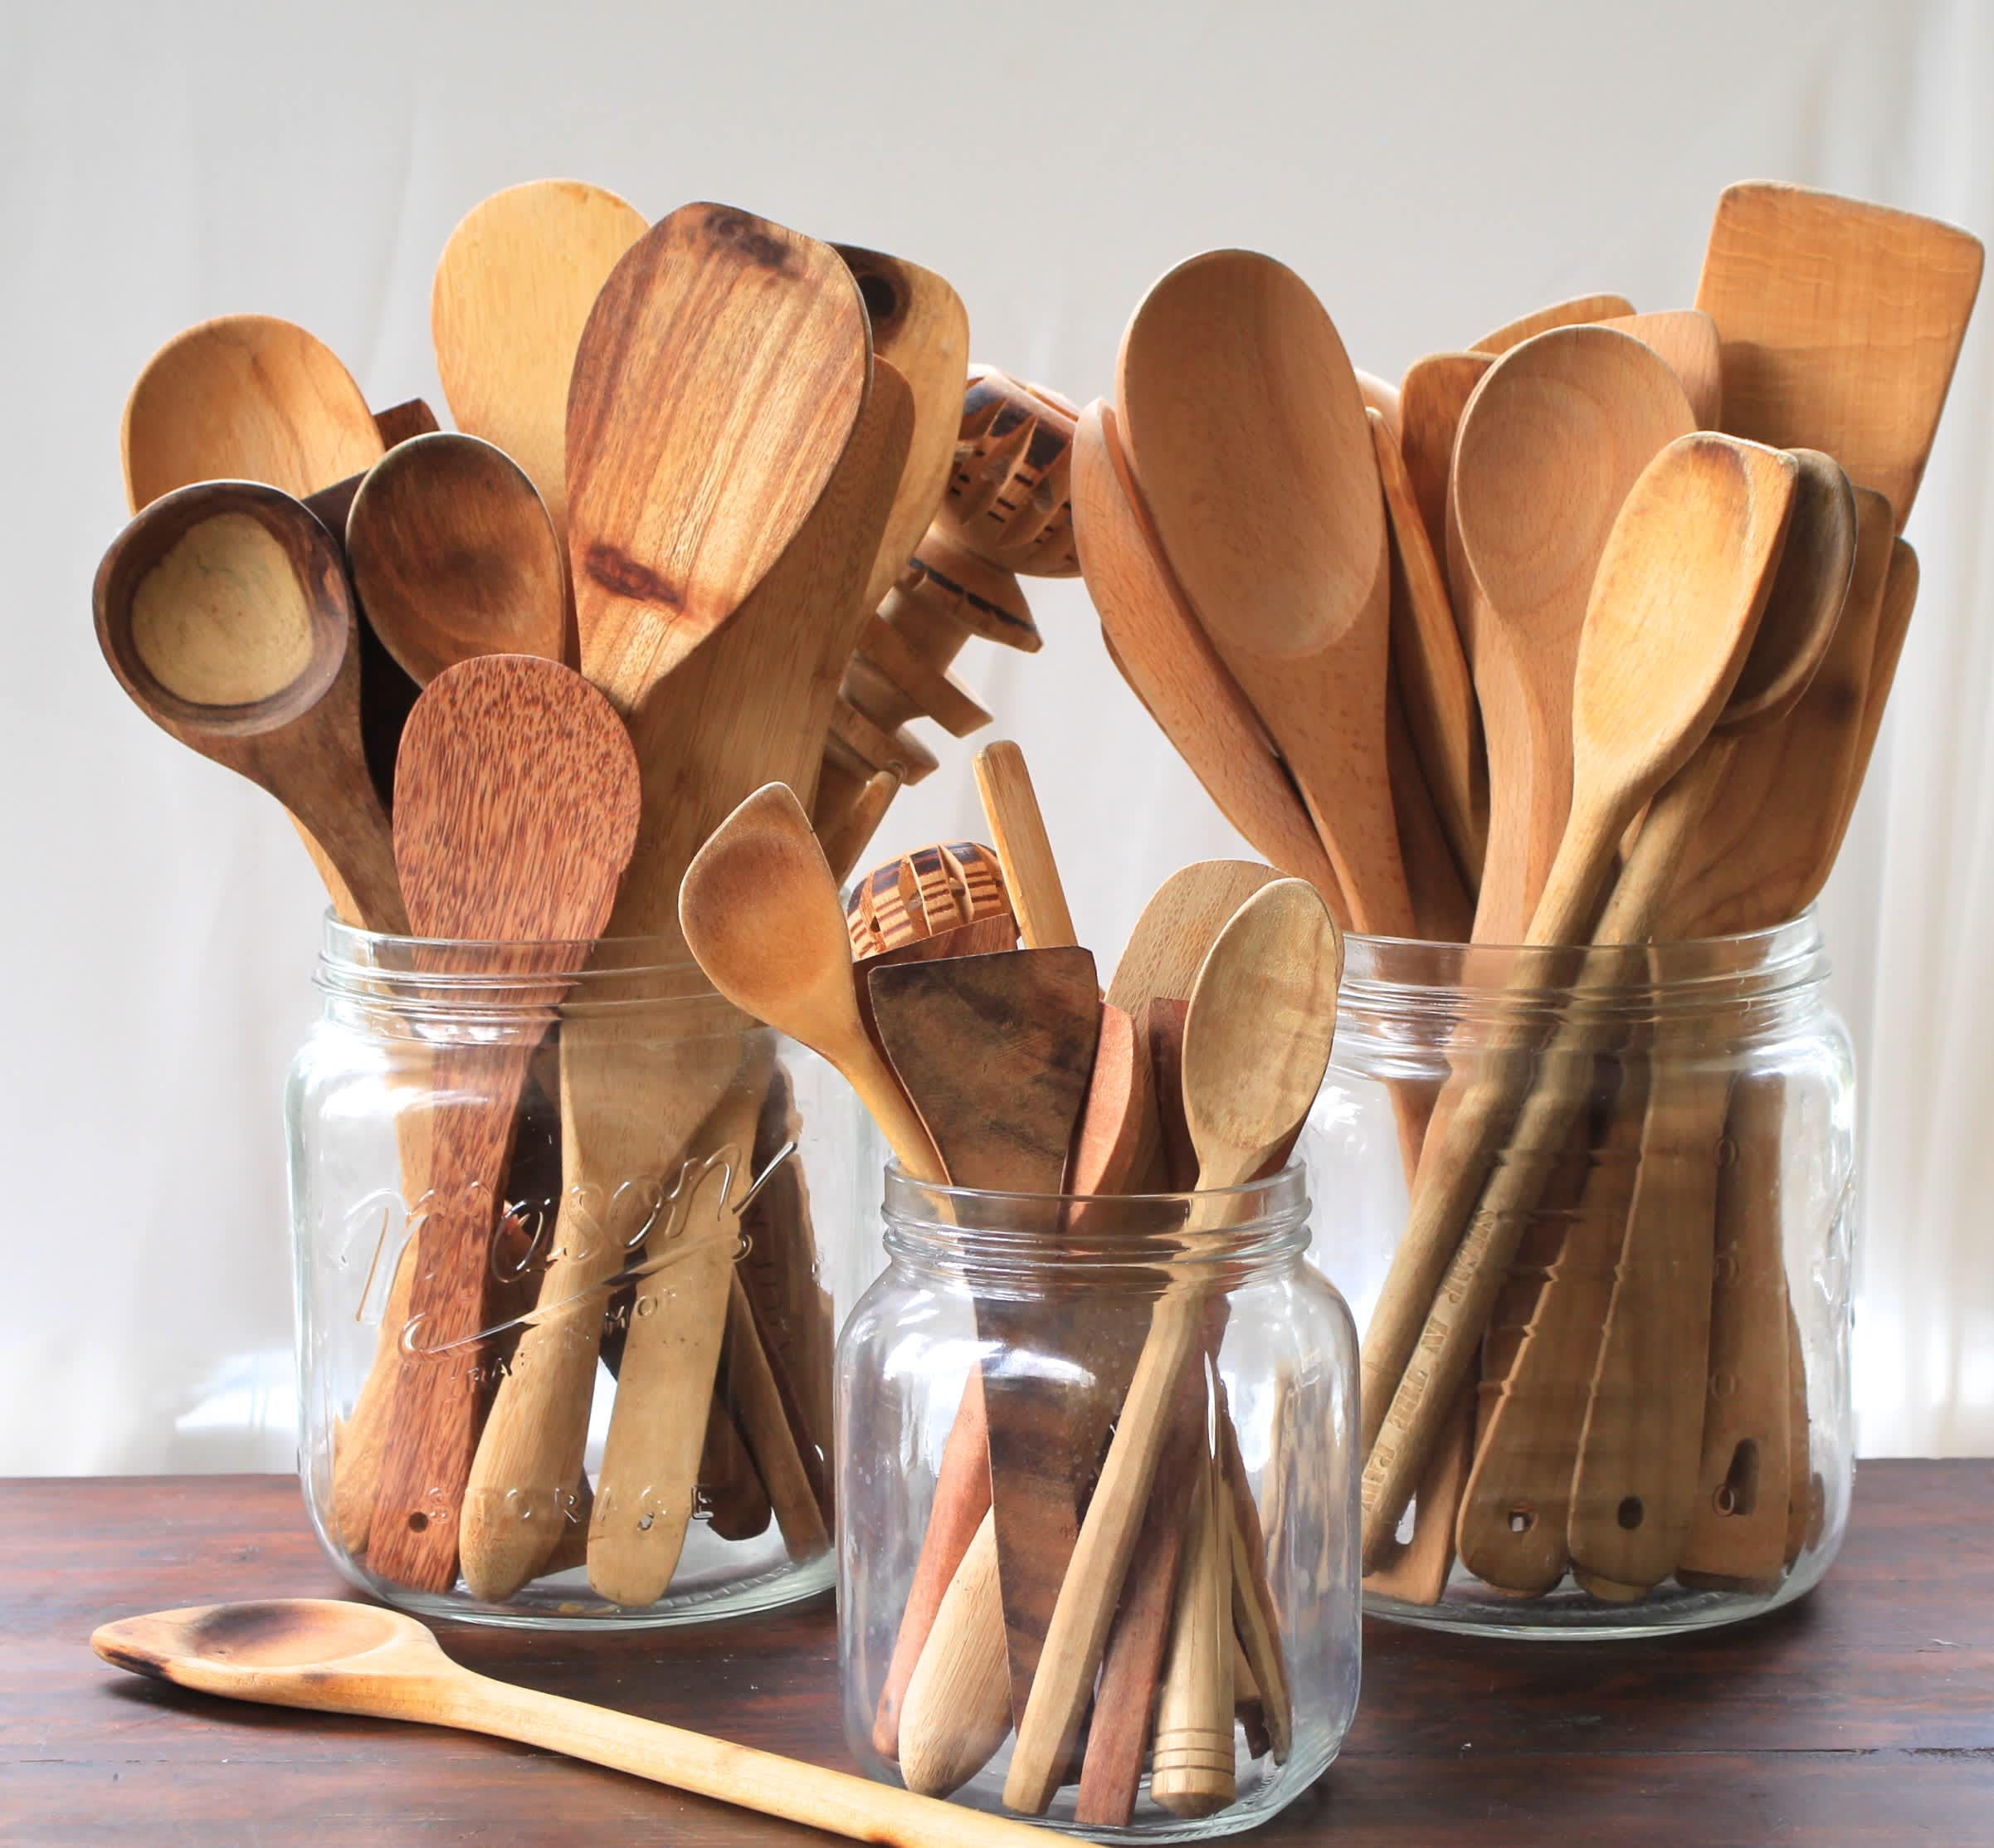 A Sure Sign You Need to Throw Away Your Wooden Cutting Boards and Spoons